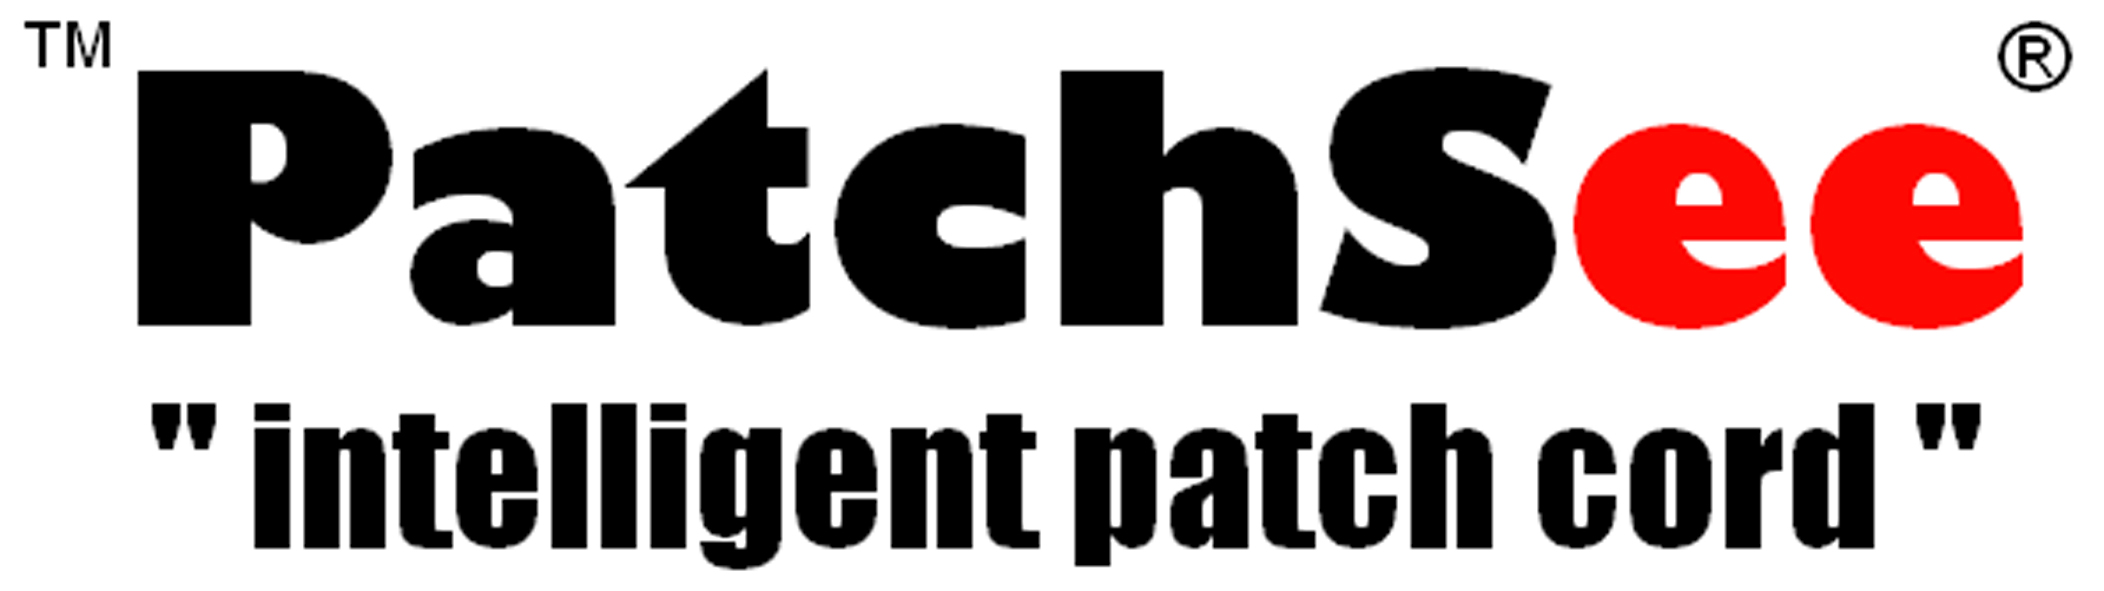 PatchSee Product Information